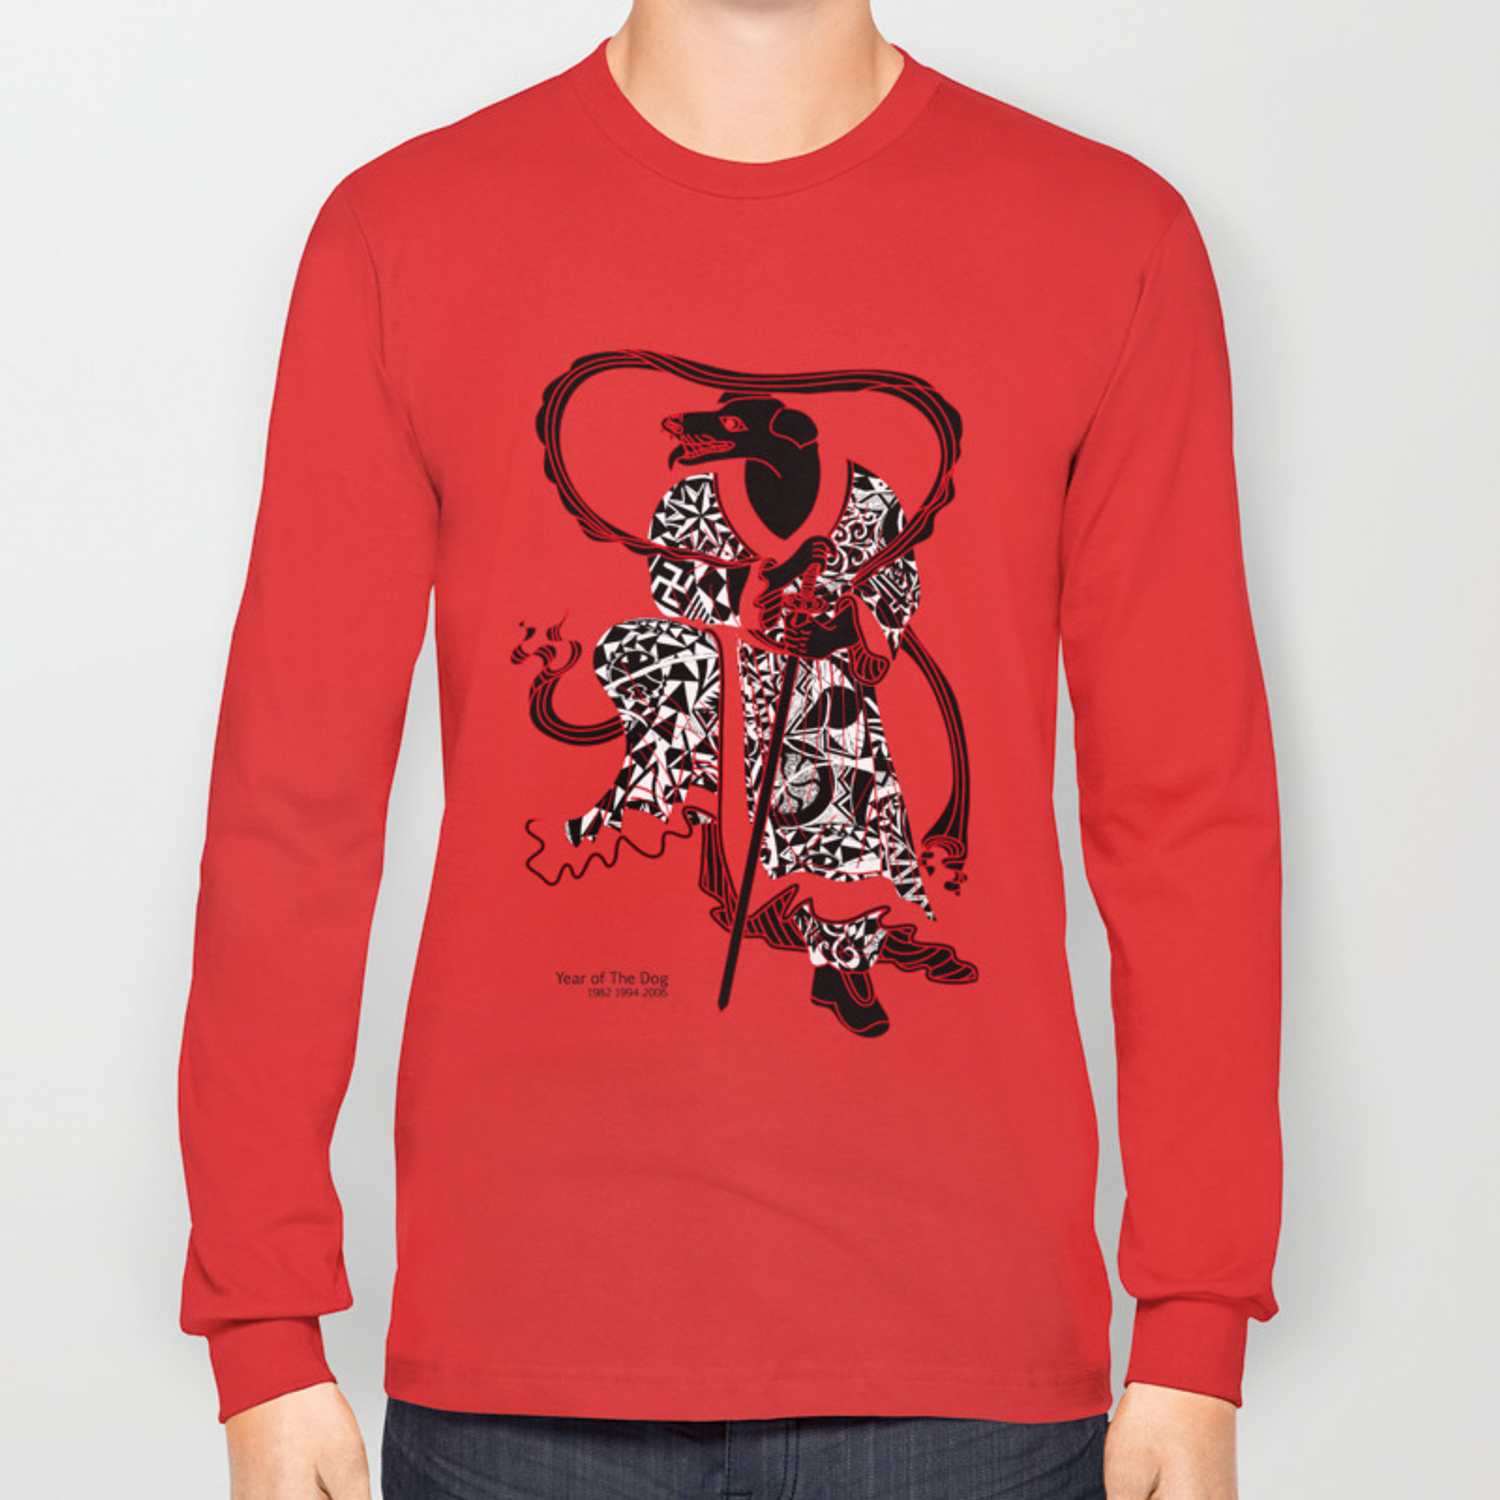 Chinese zodiac sign, Year of the Dog Long Sleeve T-shirt by tgrimm